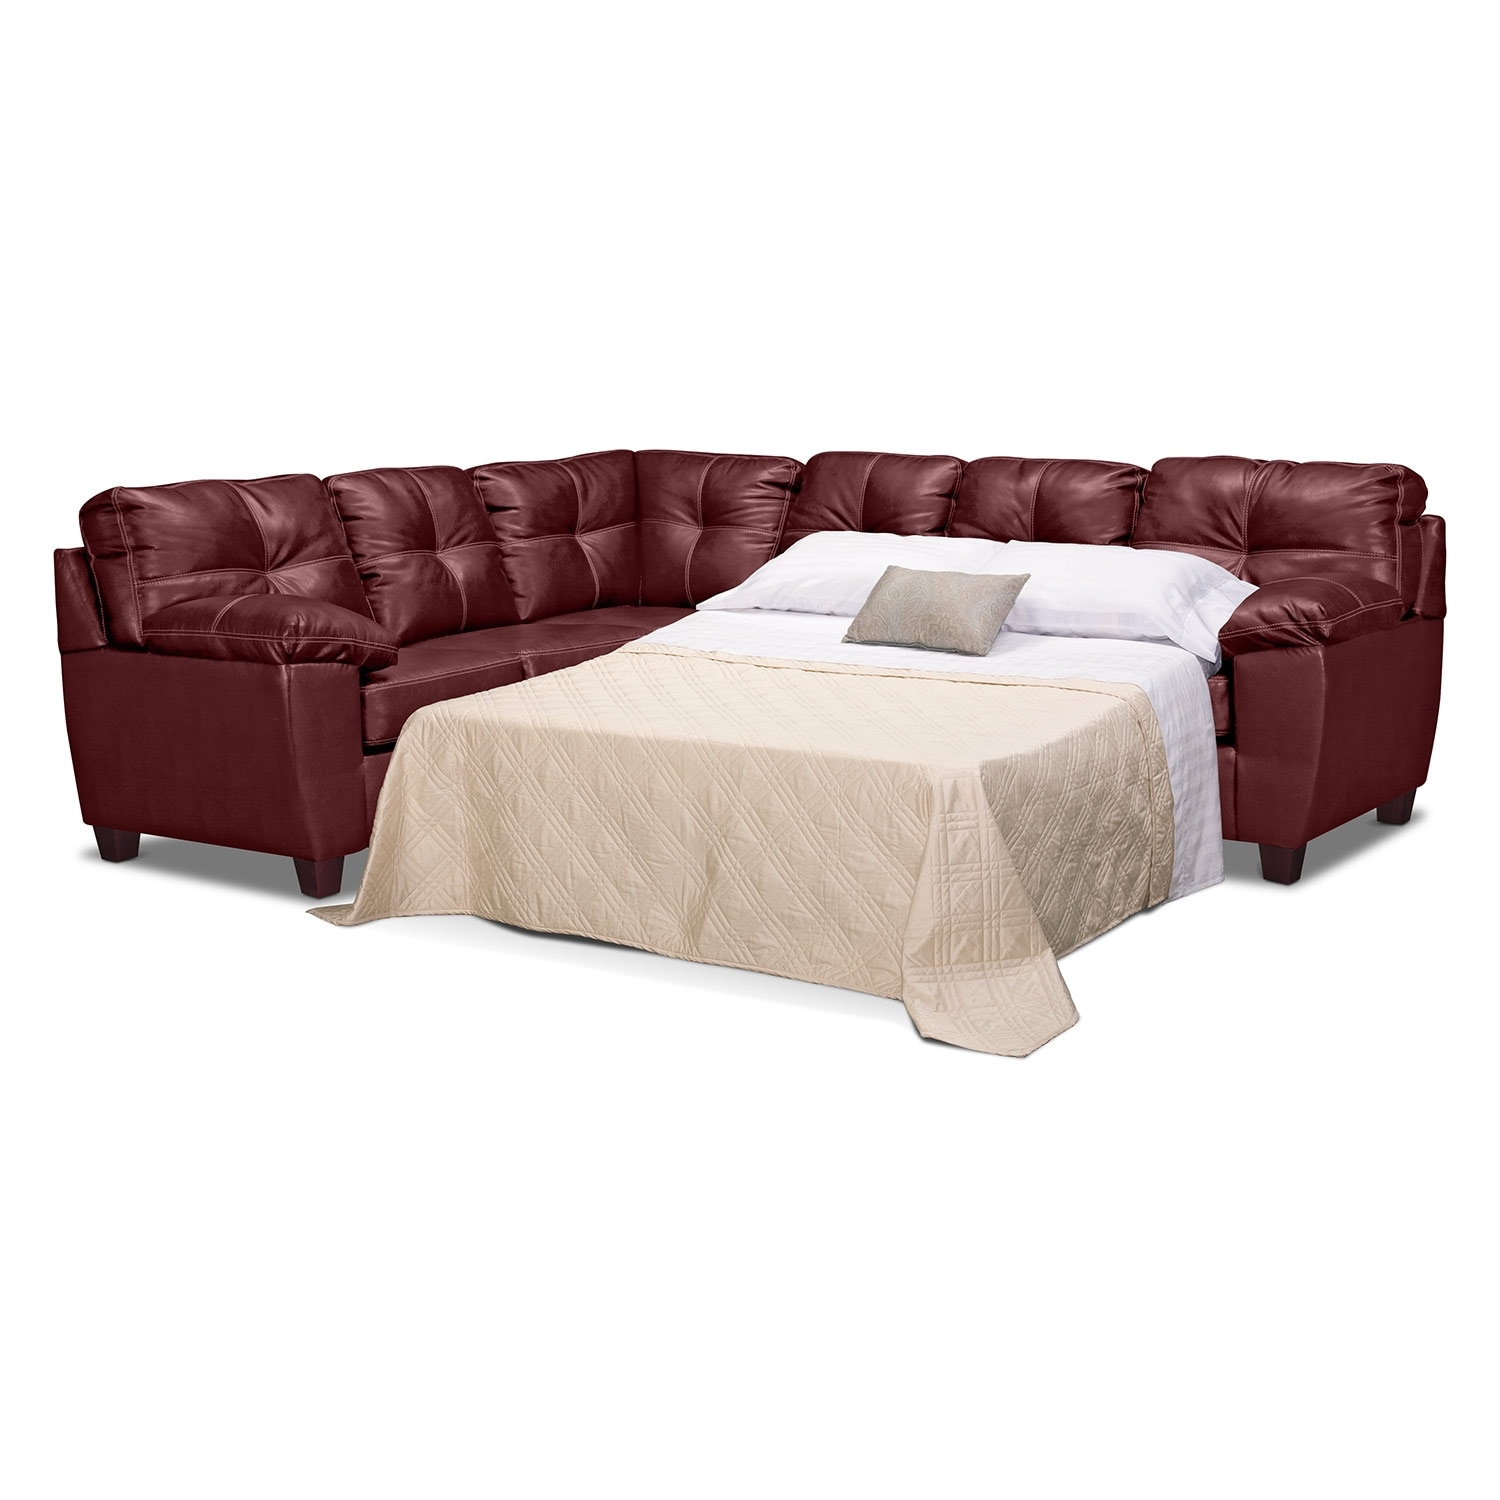 Rialto ii leather 2 pc sleeper sectional value city for Sleeper sectional